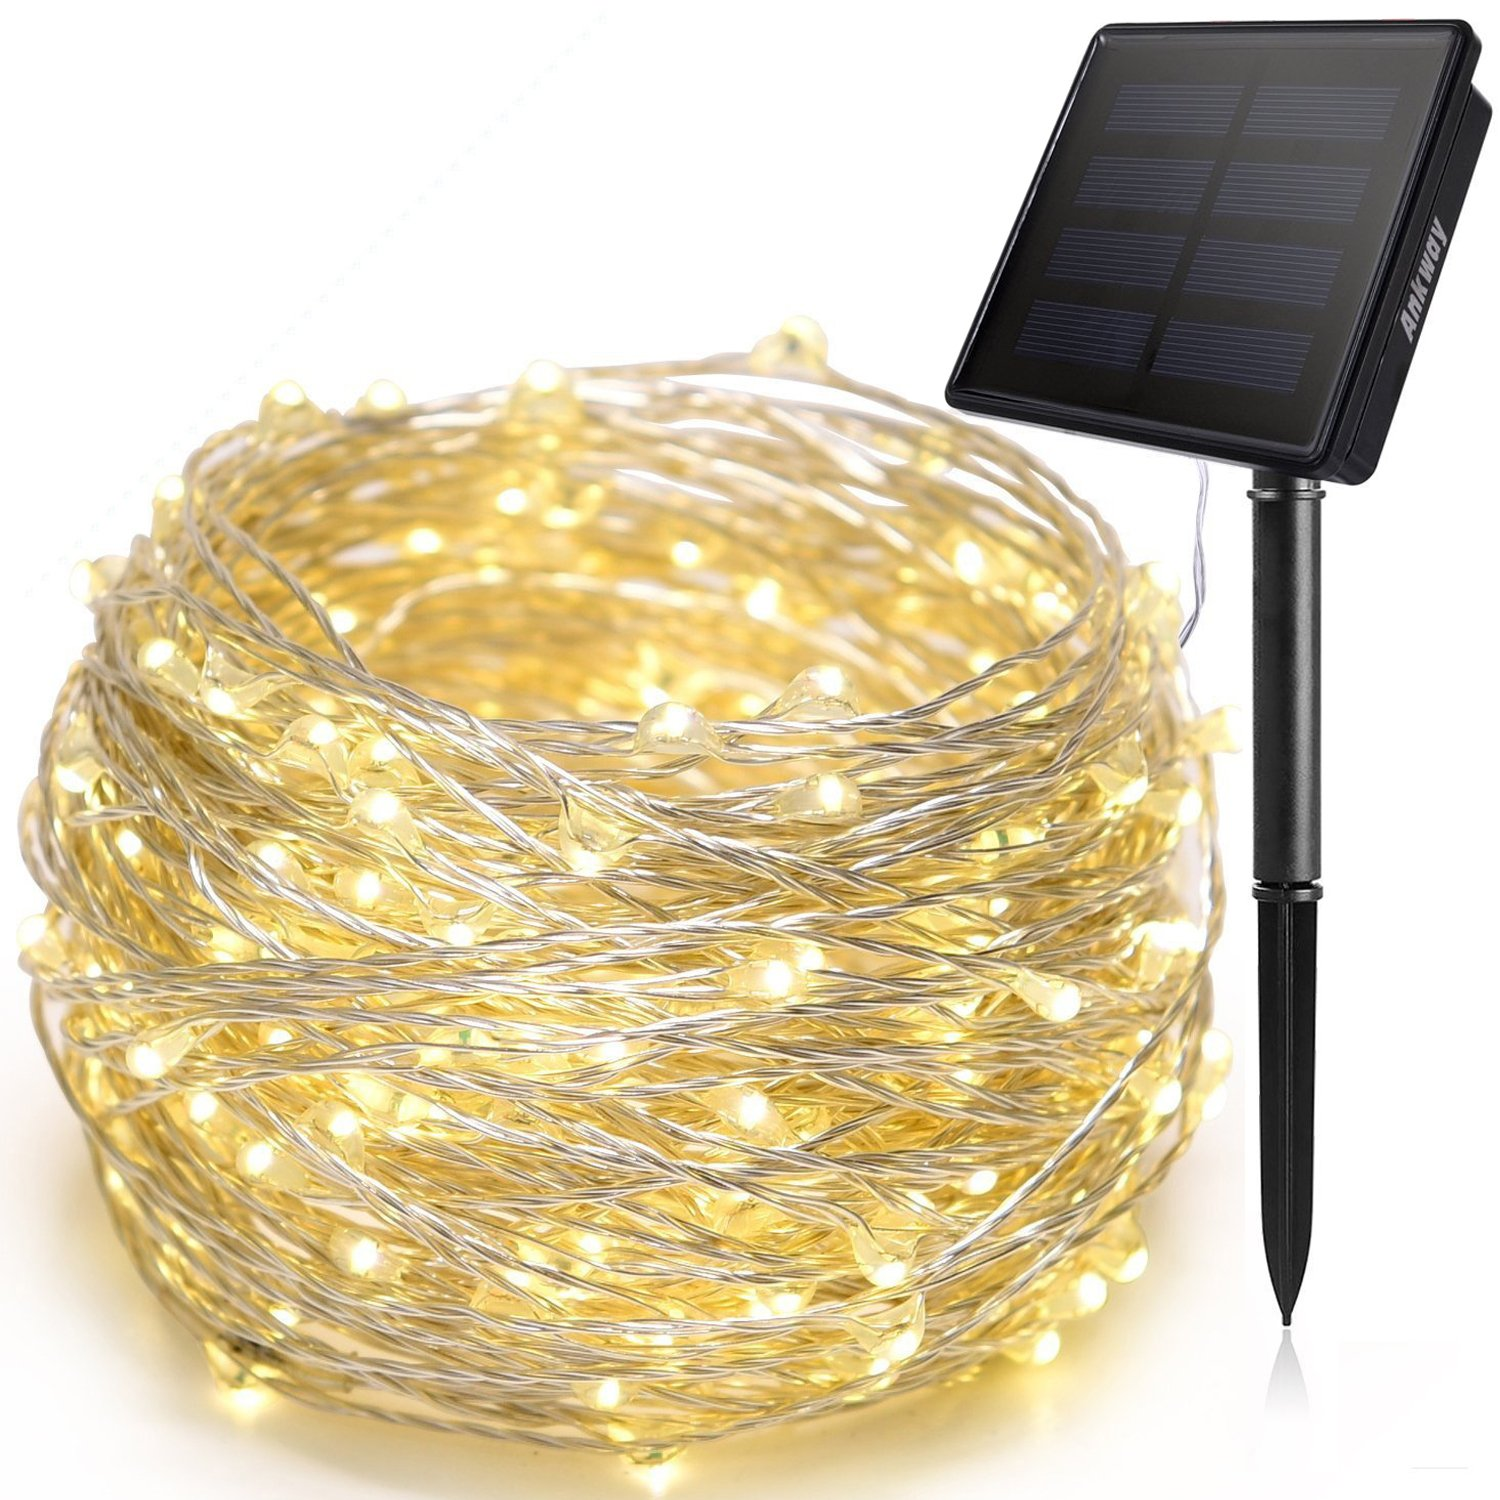 Solar String Lights, Ankway 200 LED Fairy Lights 8 Modes 3-Strands Copper Wire 72 ft Waterproof IP65 Solar String Lights Outdoor Indoor Patio Garden Christmas Decorative (Warm White) by Ankway